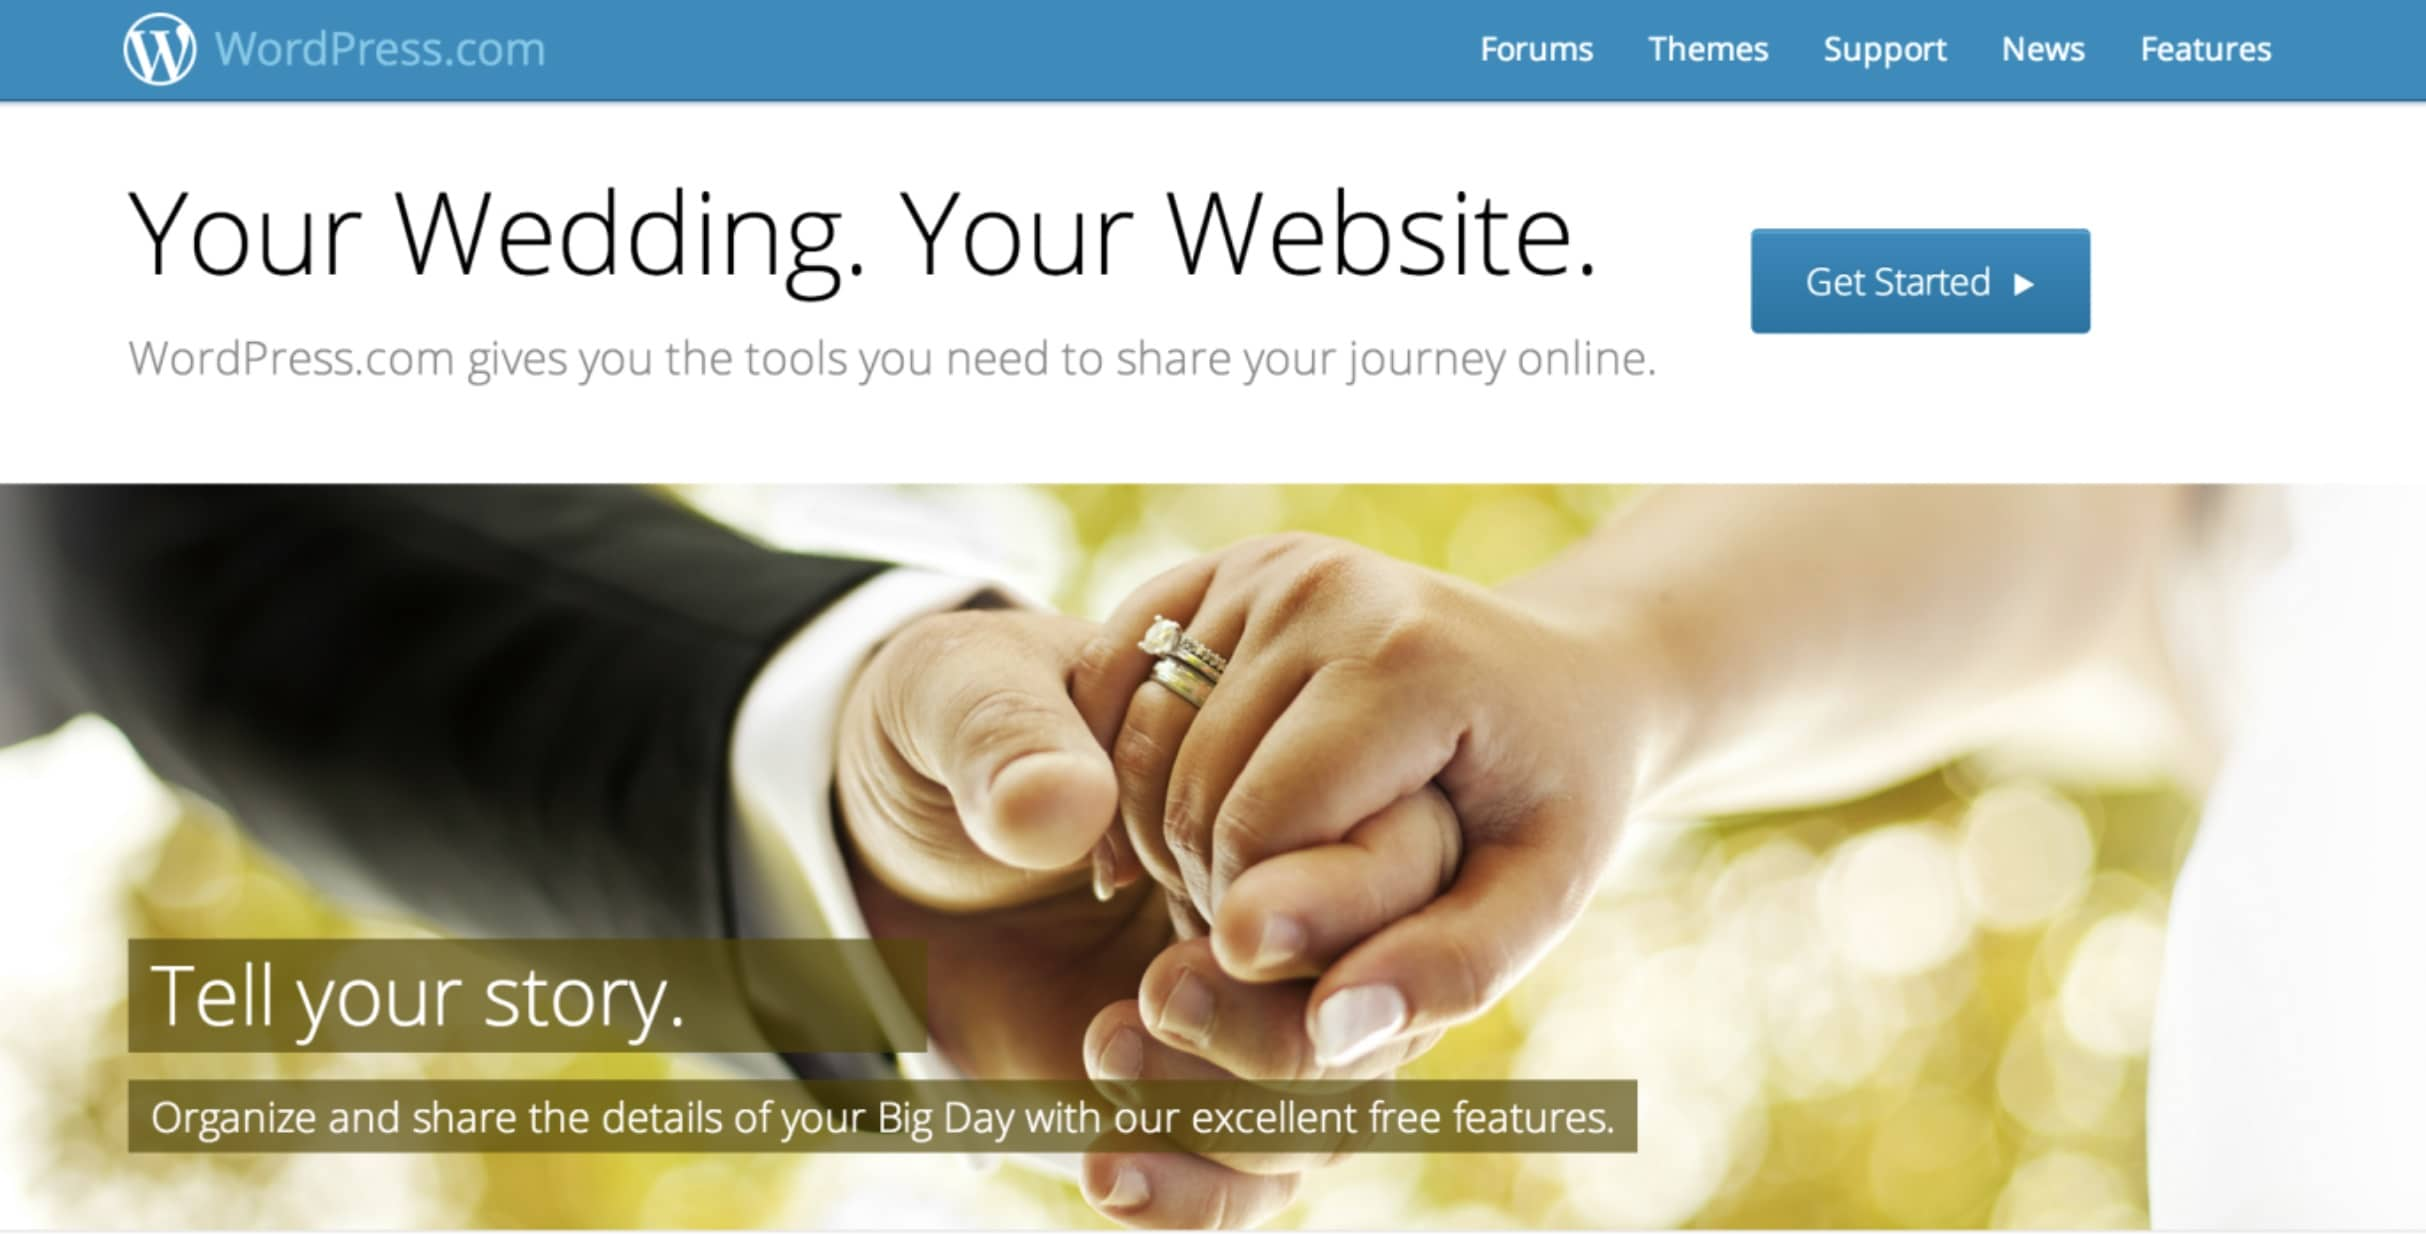 WordPress.com wedding website builder